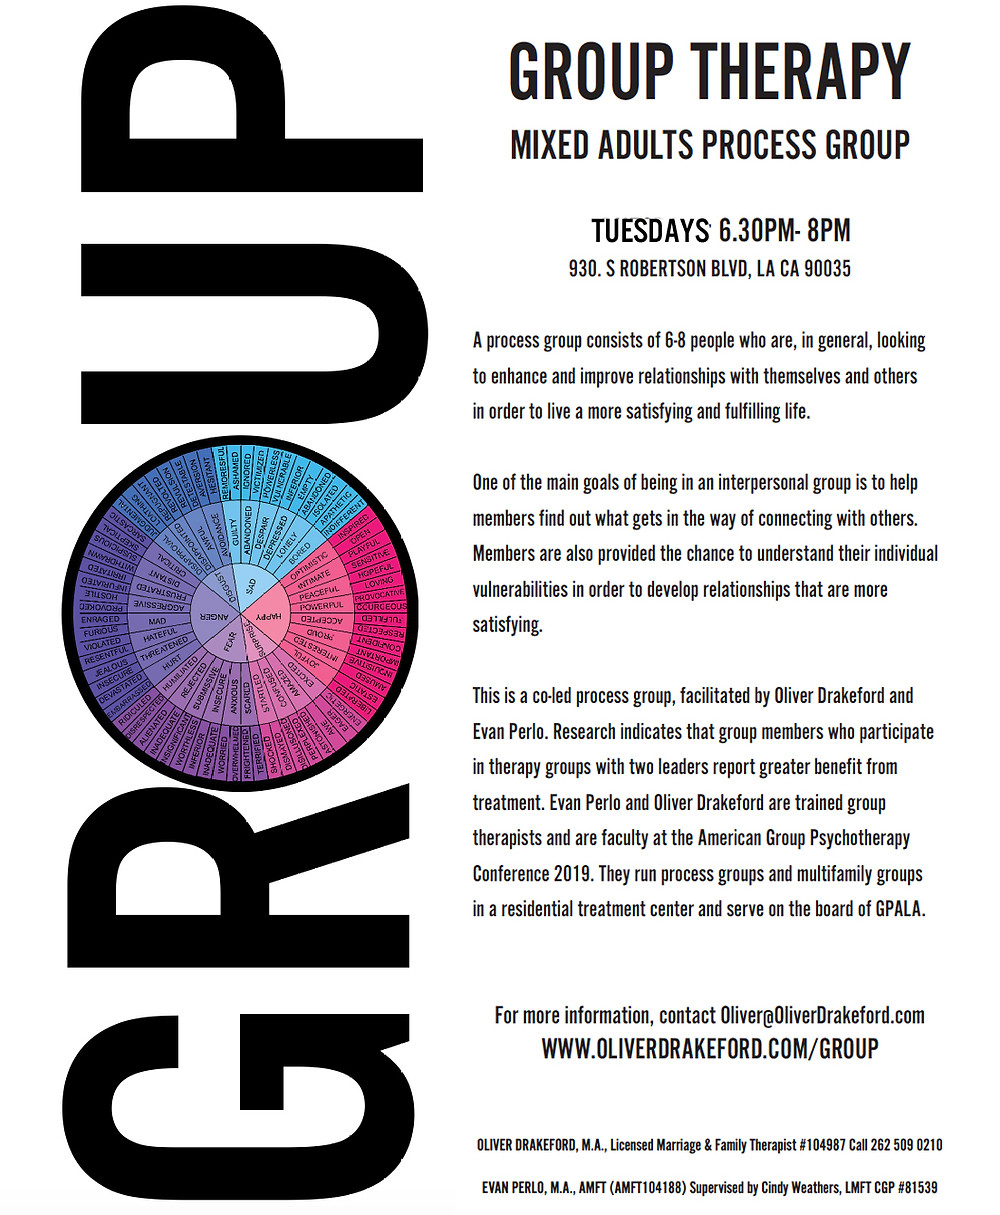 group therapy, beverly hills, los angeles, group therapy, process group